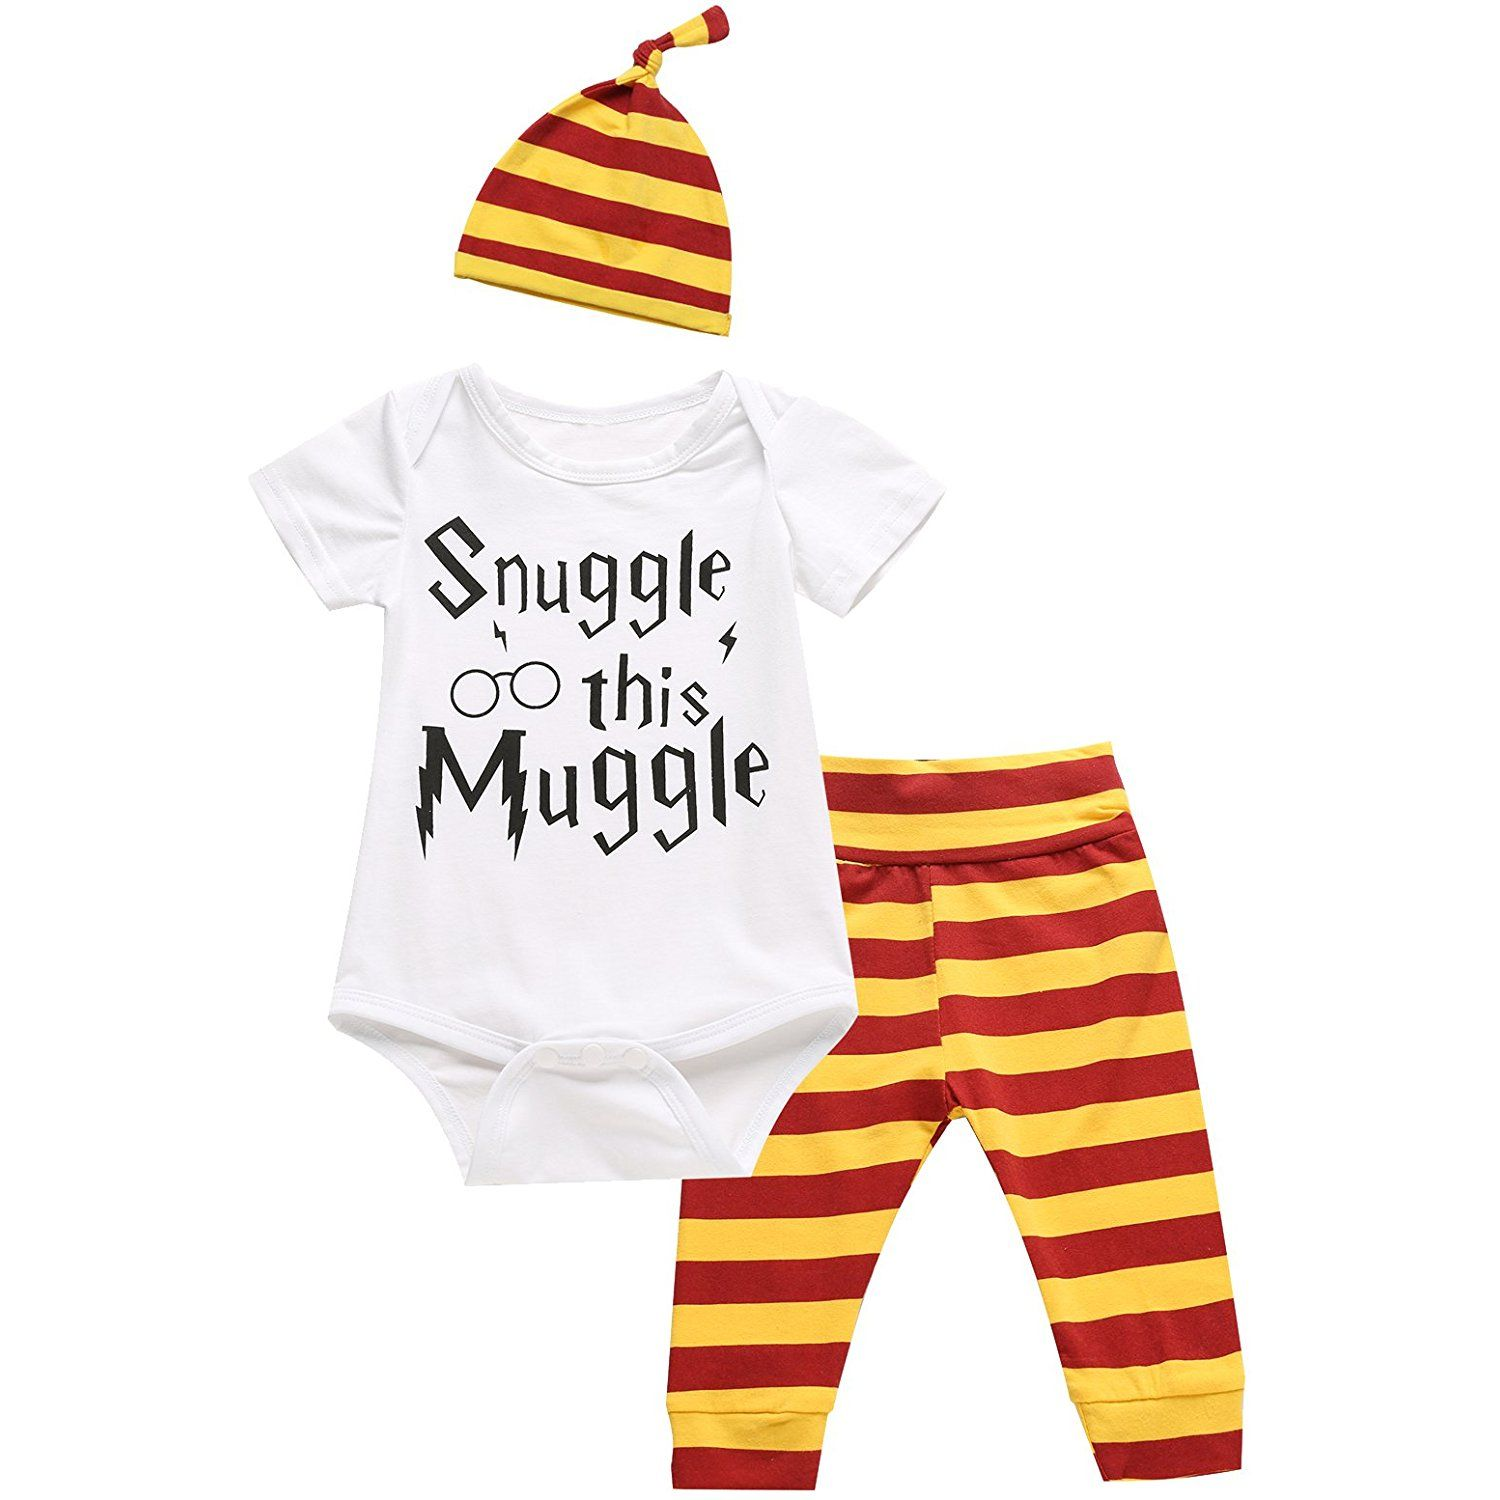 1cb2d687e2 3Pcs Outfit Set Baby Boy Girl Infant Snuggle this Muggle Rompers     You  can get additional details at the image link. (This is an affiliate link)    ...